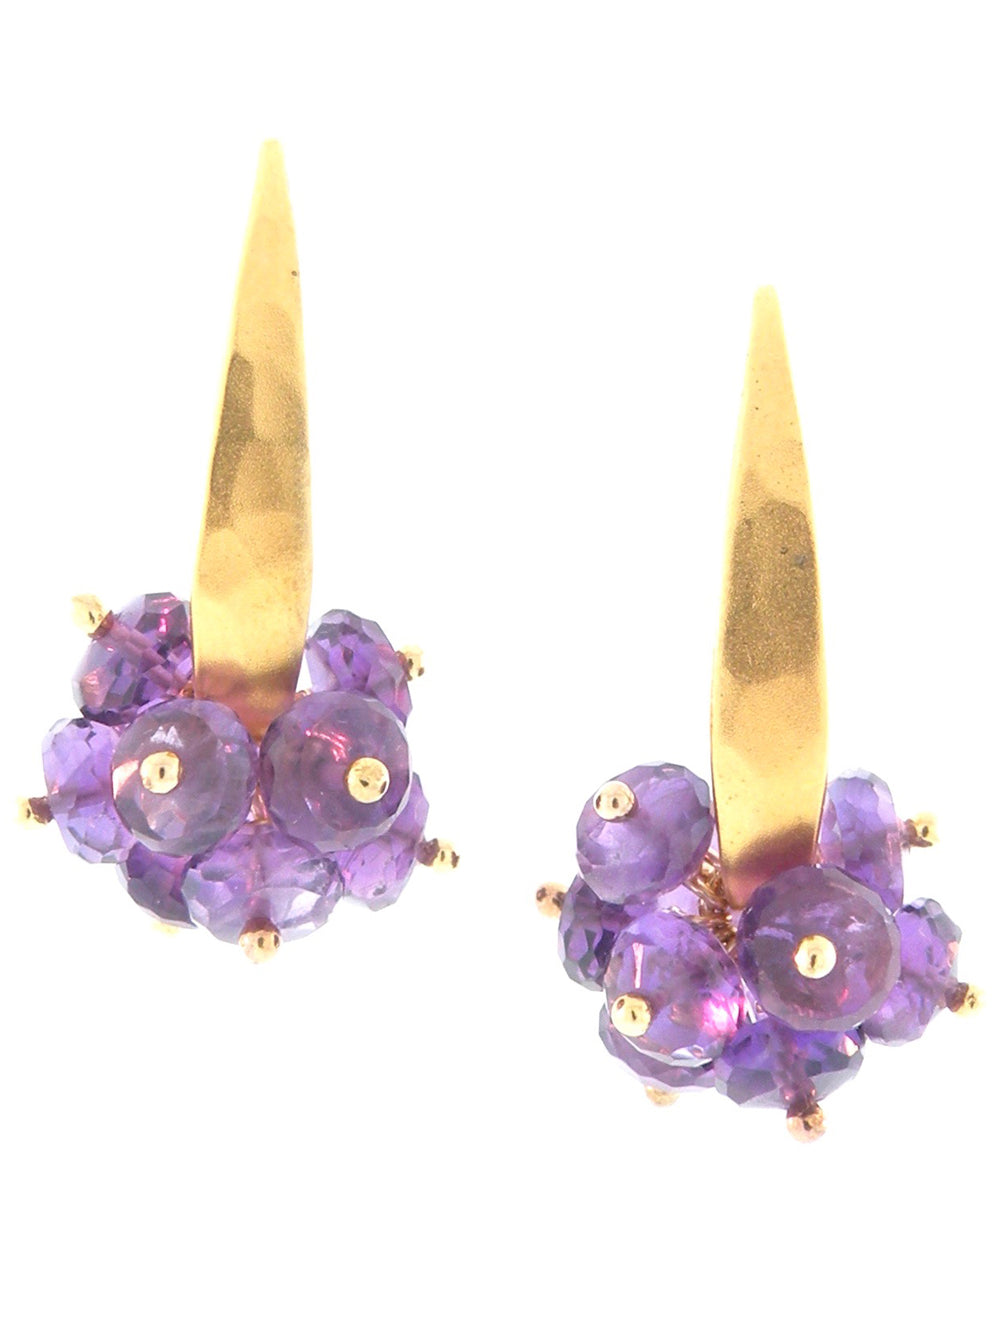 Amethyst Earrings - Dana Busch Designs